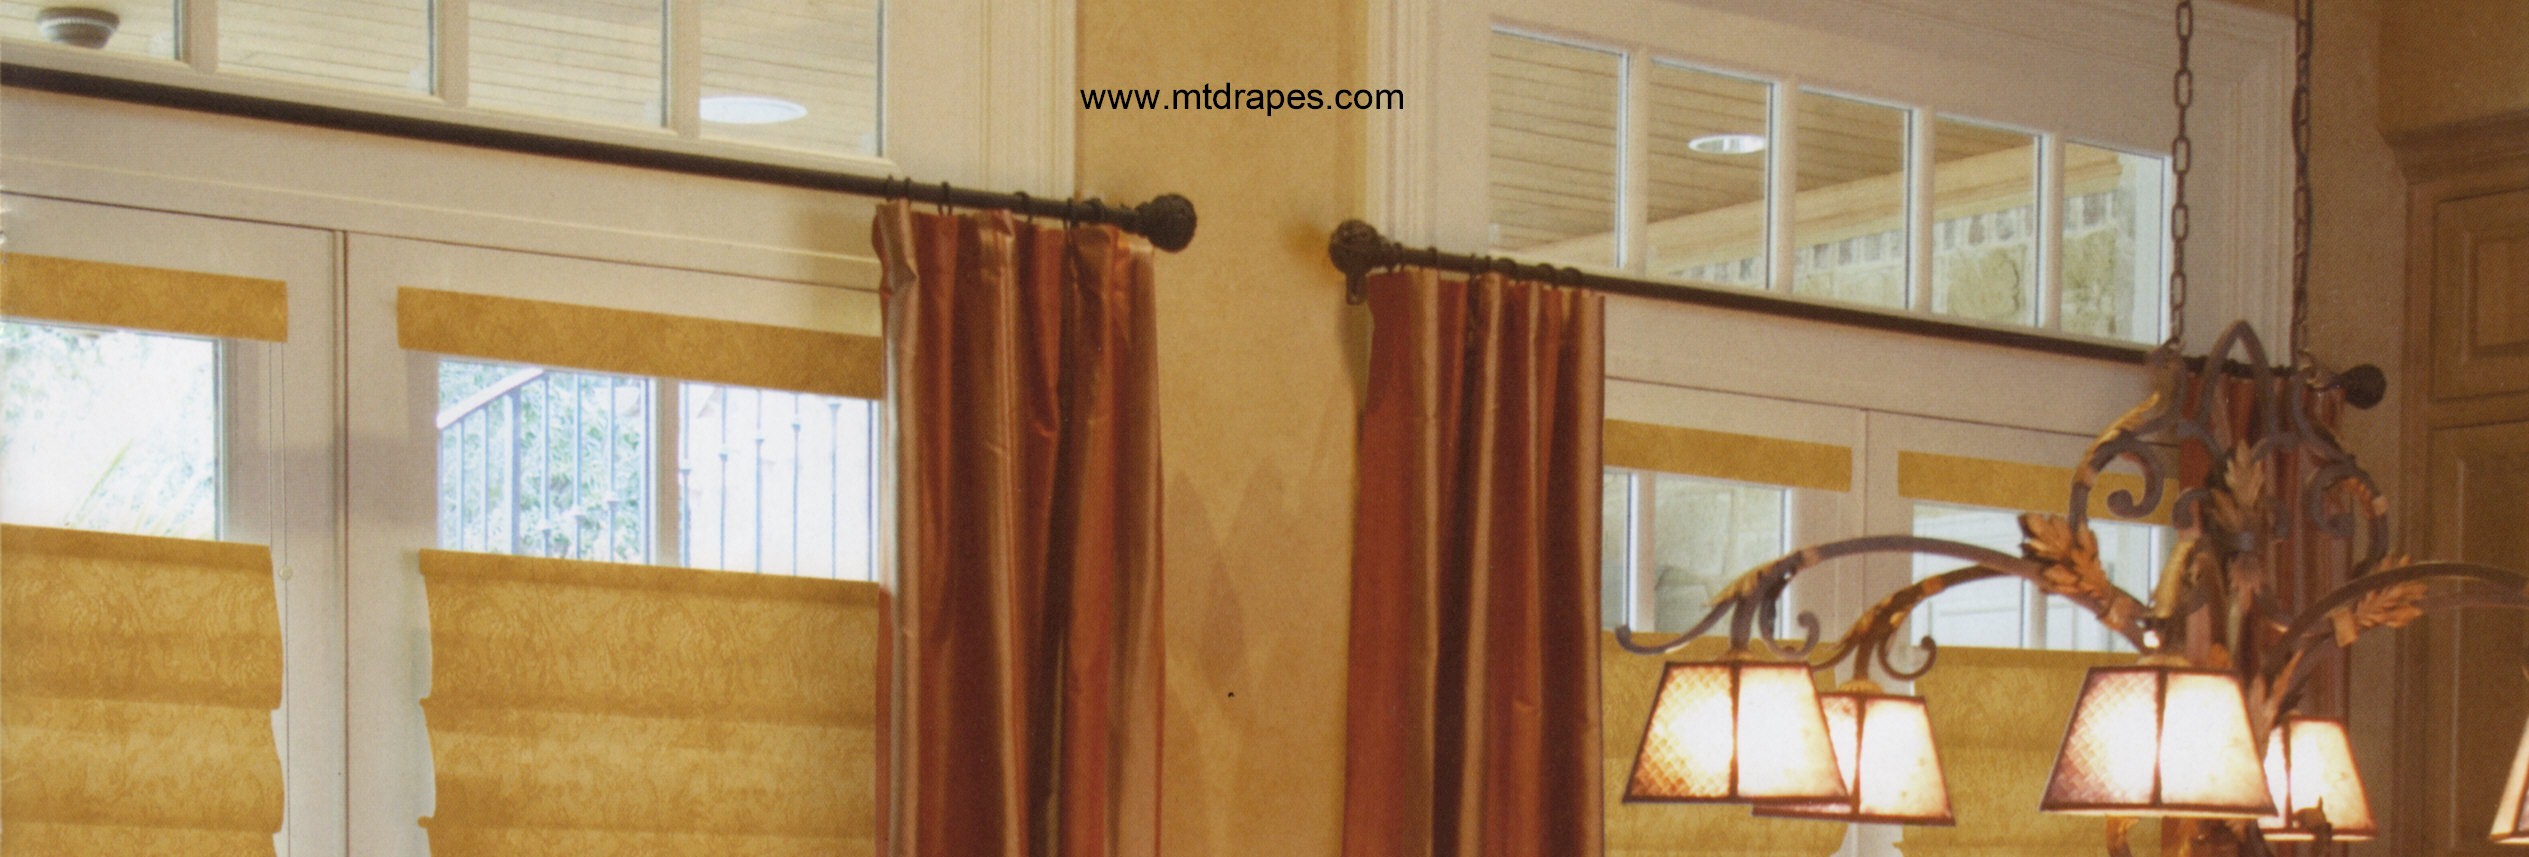 Wooden curtain brackets - Wrought Iron Drapery Rods